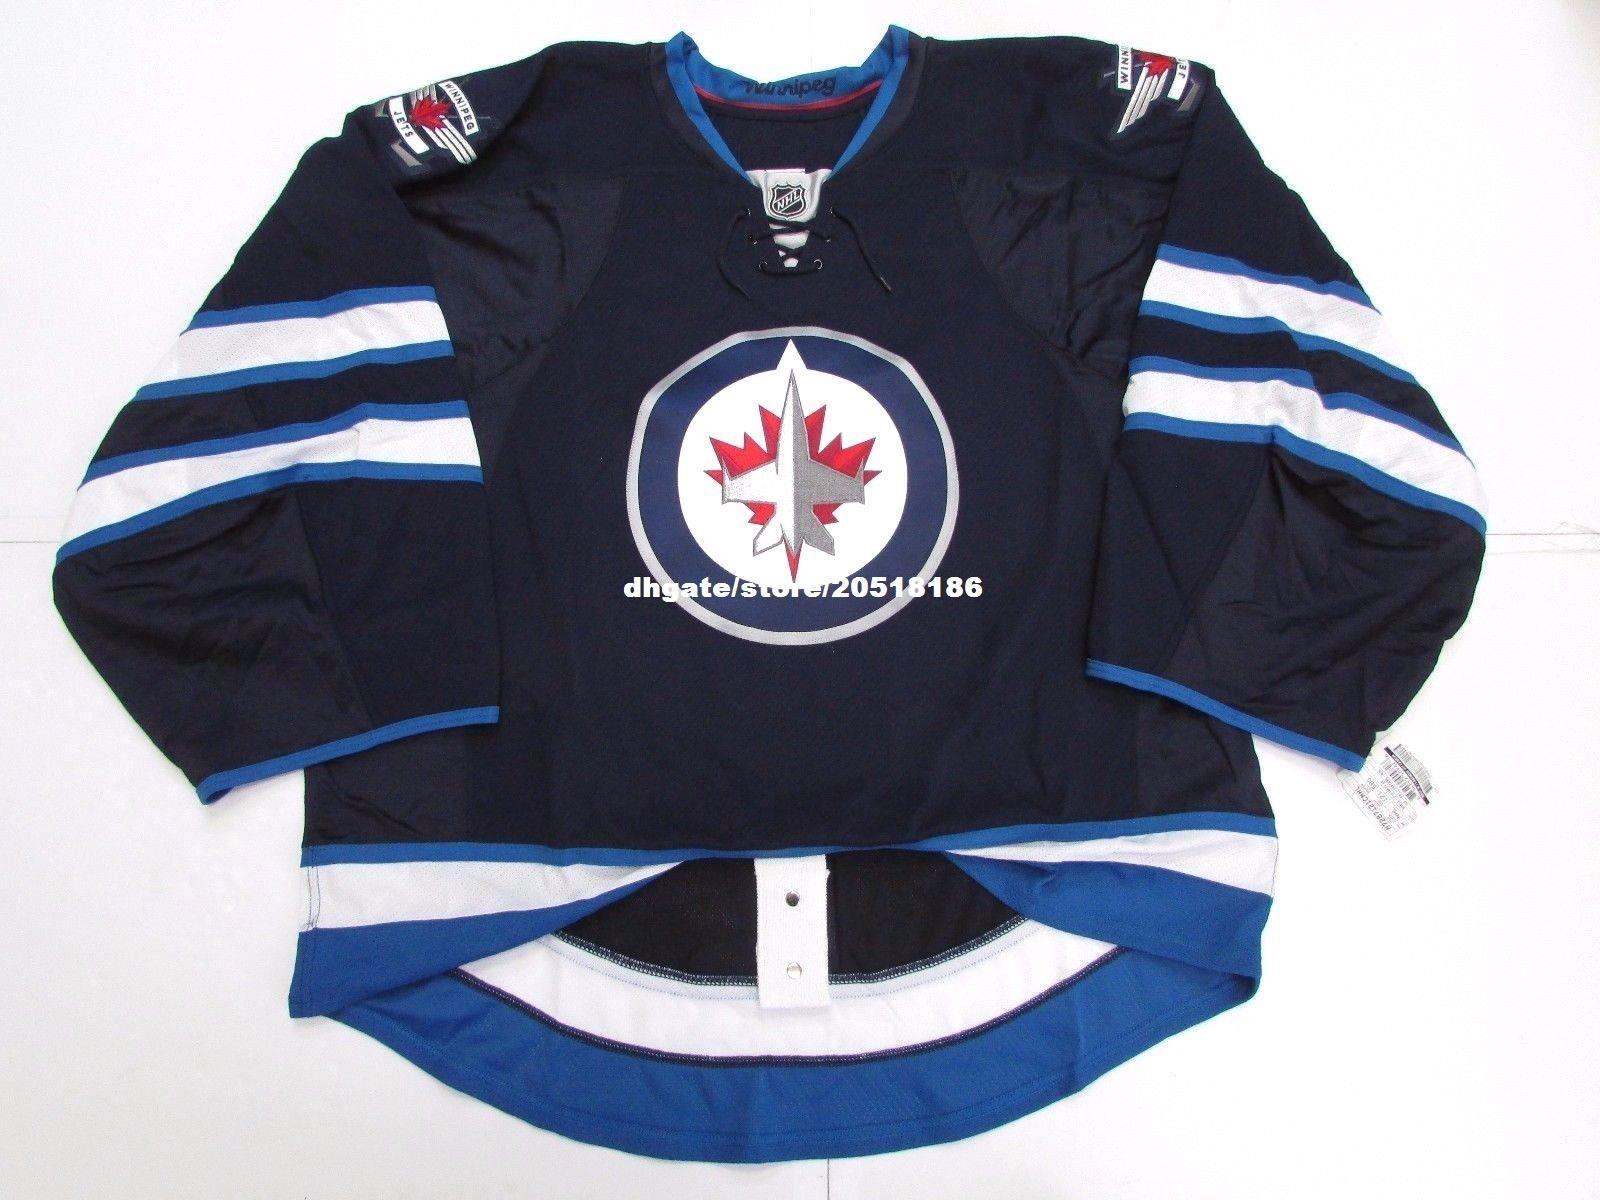 595d7cb98 Cheap Wholesale Custom WINNIPEG JETS HOME TEAM ISSUED EDGE JERSEY GOALIE  CUT 60 Mens Stitched Personalized Hockey Jerseys UK 2019 From Nfljersey1